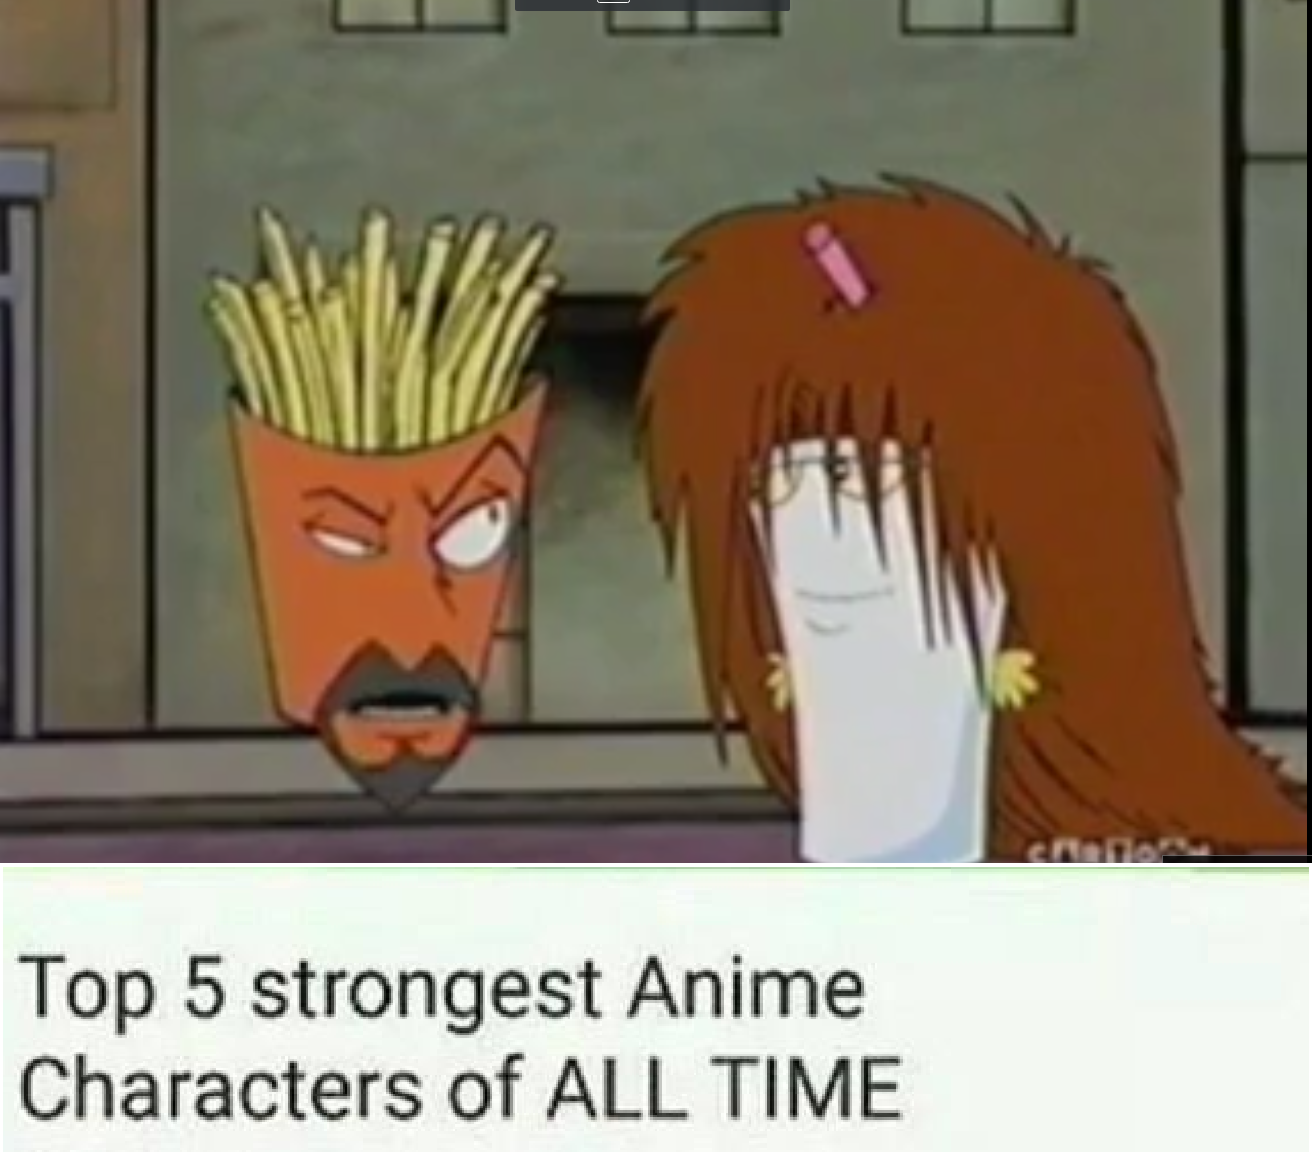 Top 5 Strongest Anime Characters of ALL TIME 30791 Views It'-s Lit ...